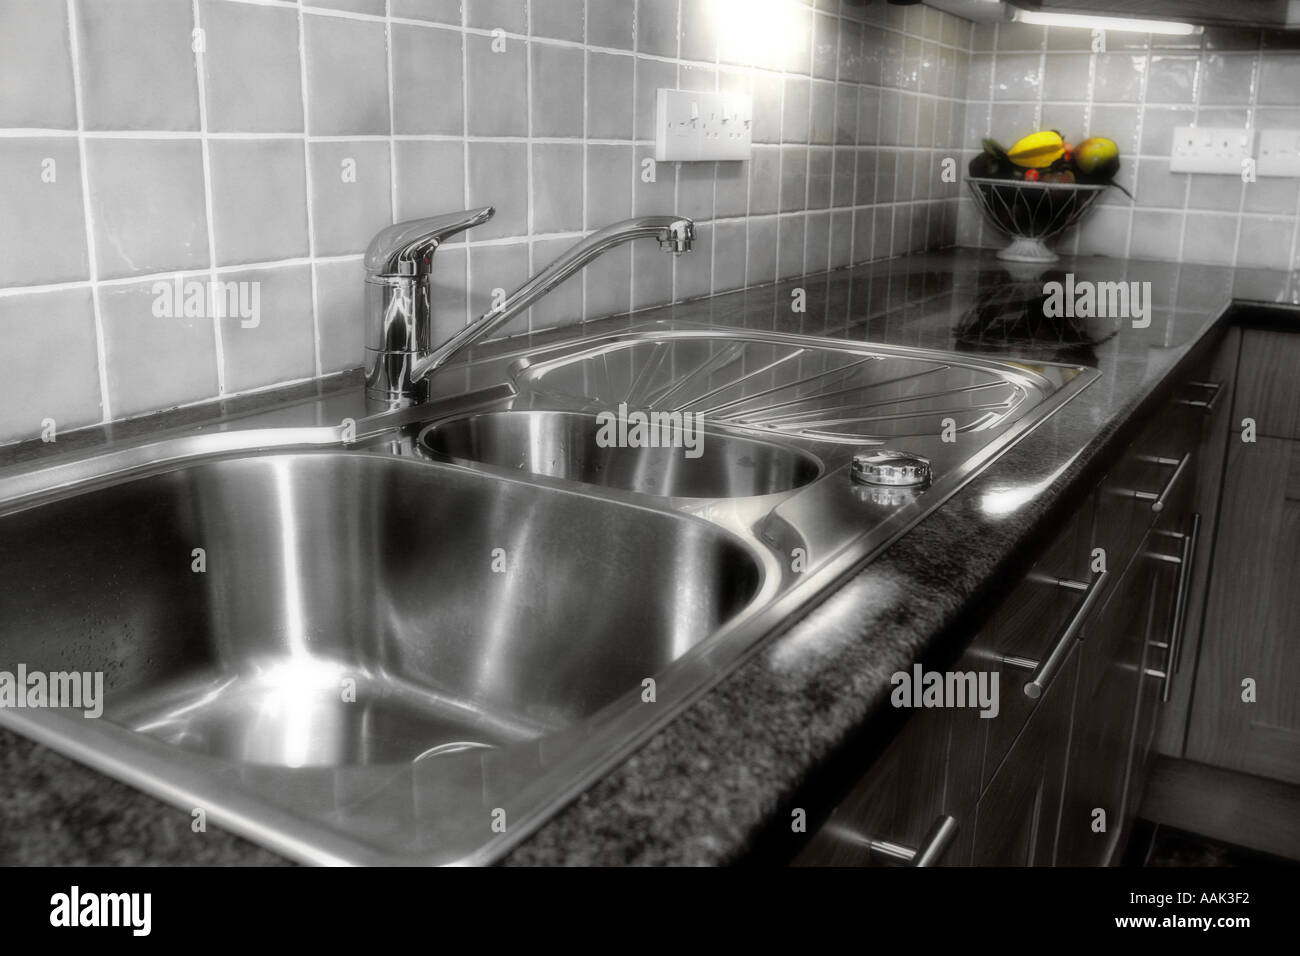 Draining Board Stock Photos & Draining Board Stock Images - Alamy